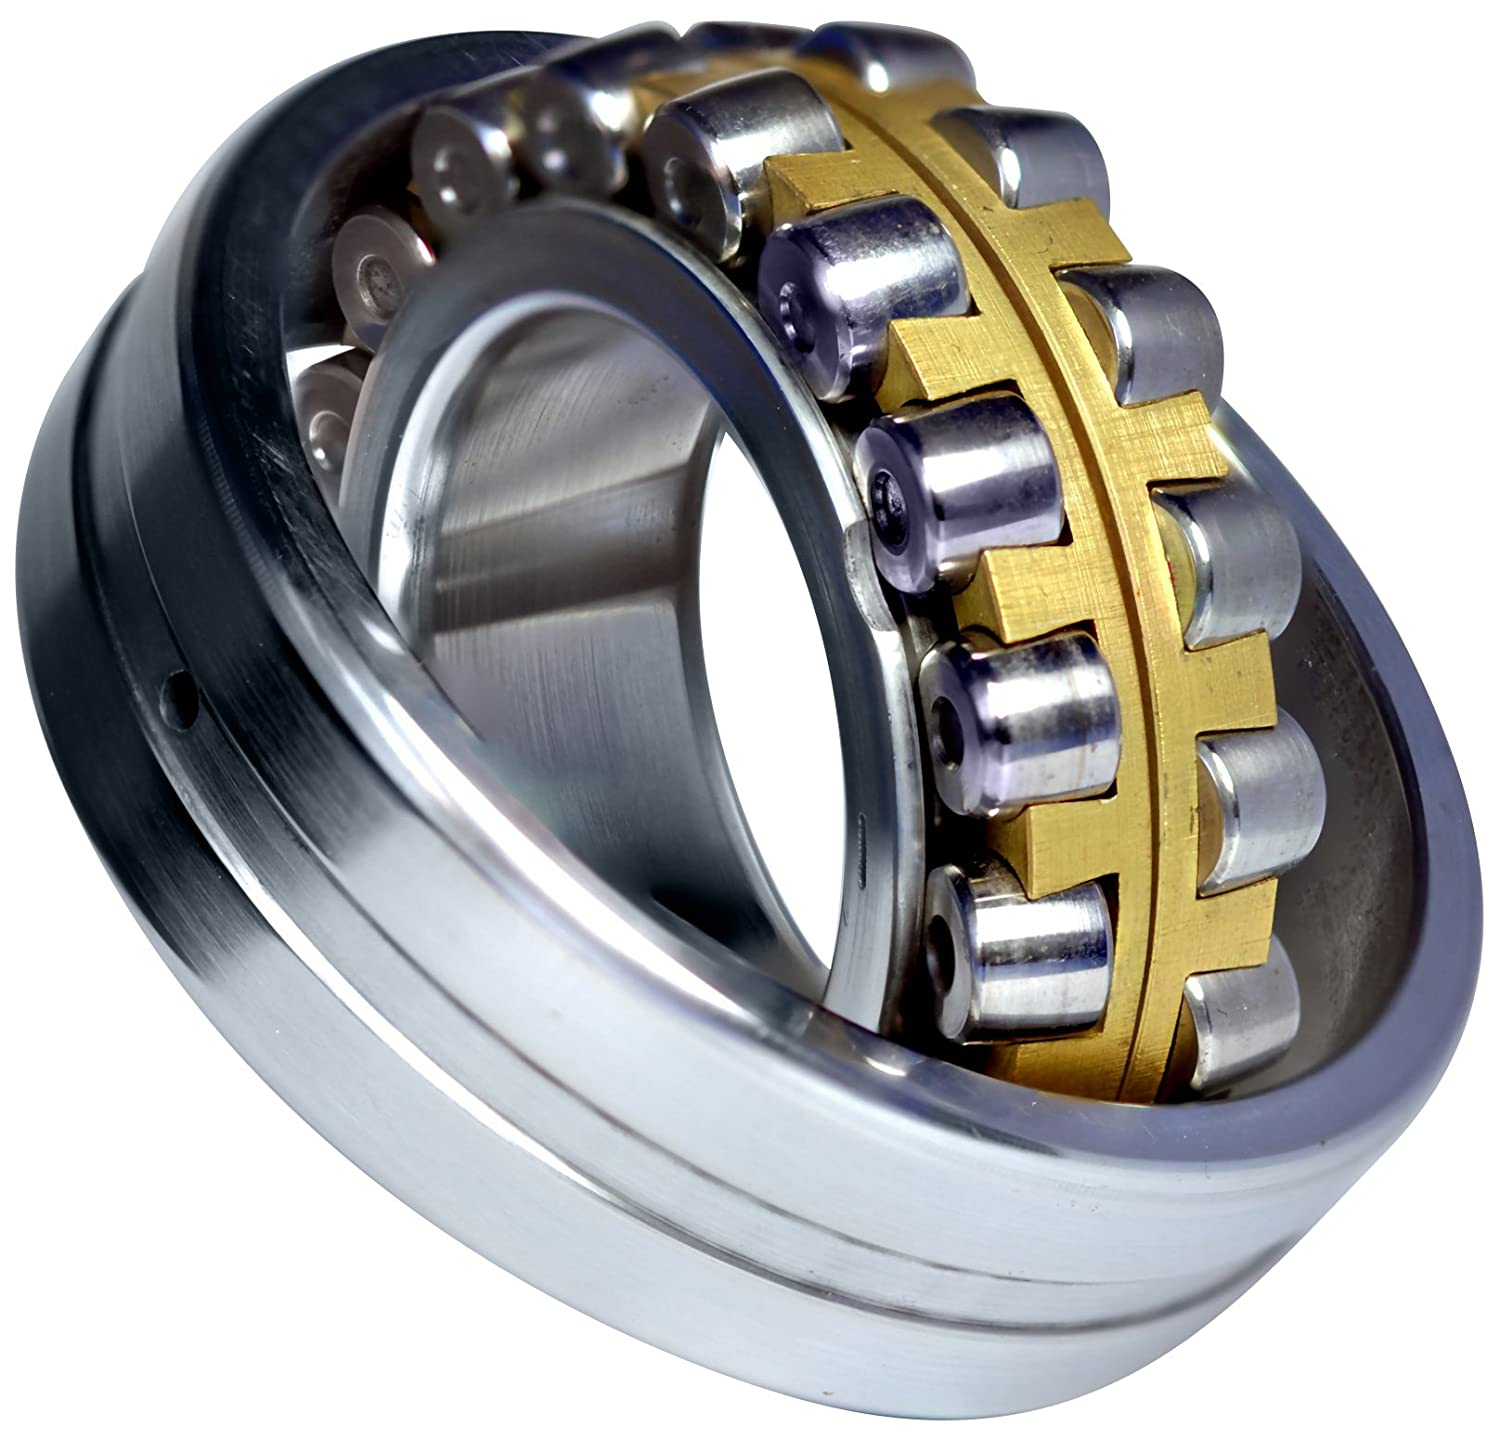 104 mm Width URB   23138 KMC3W33 320 mm OD URB 23138 KMC3W33 Spherical Roller Bearing W33 Oil Groove Machined Brass Cage 190 mm ID